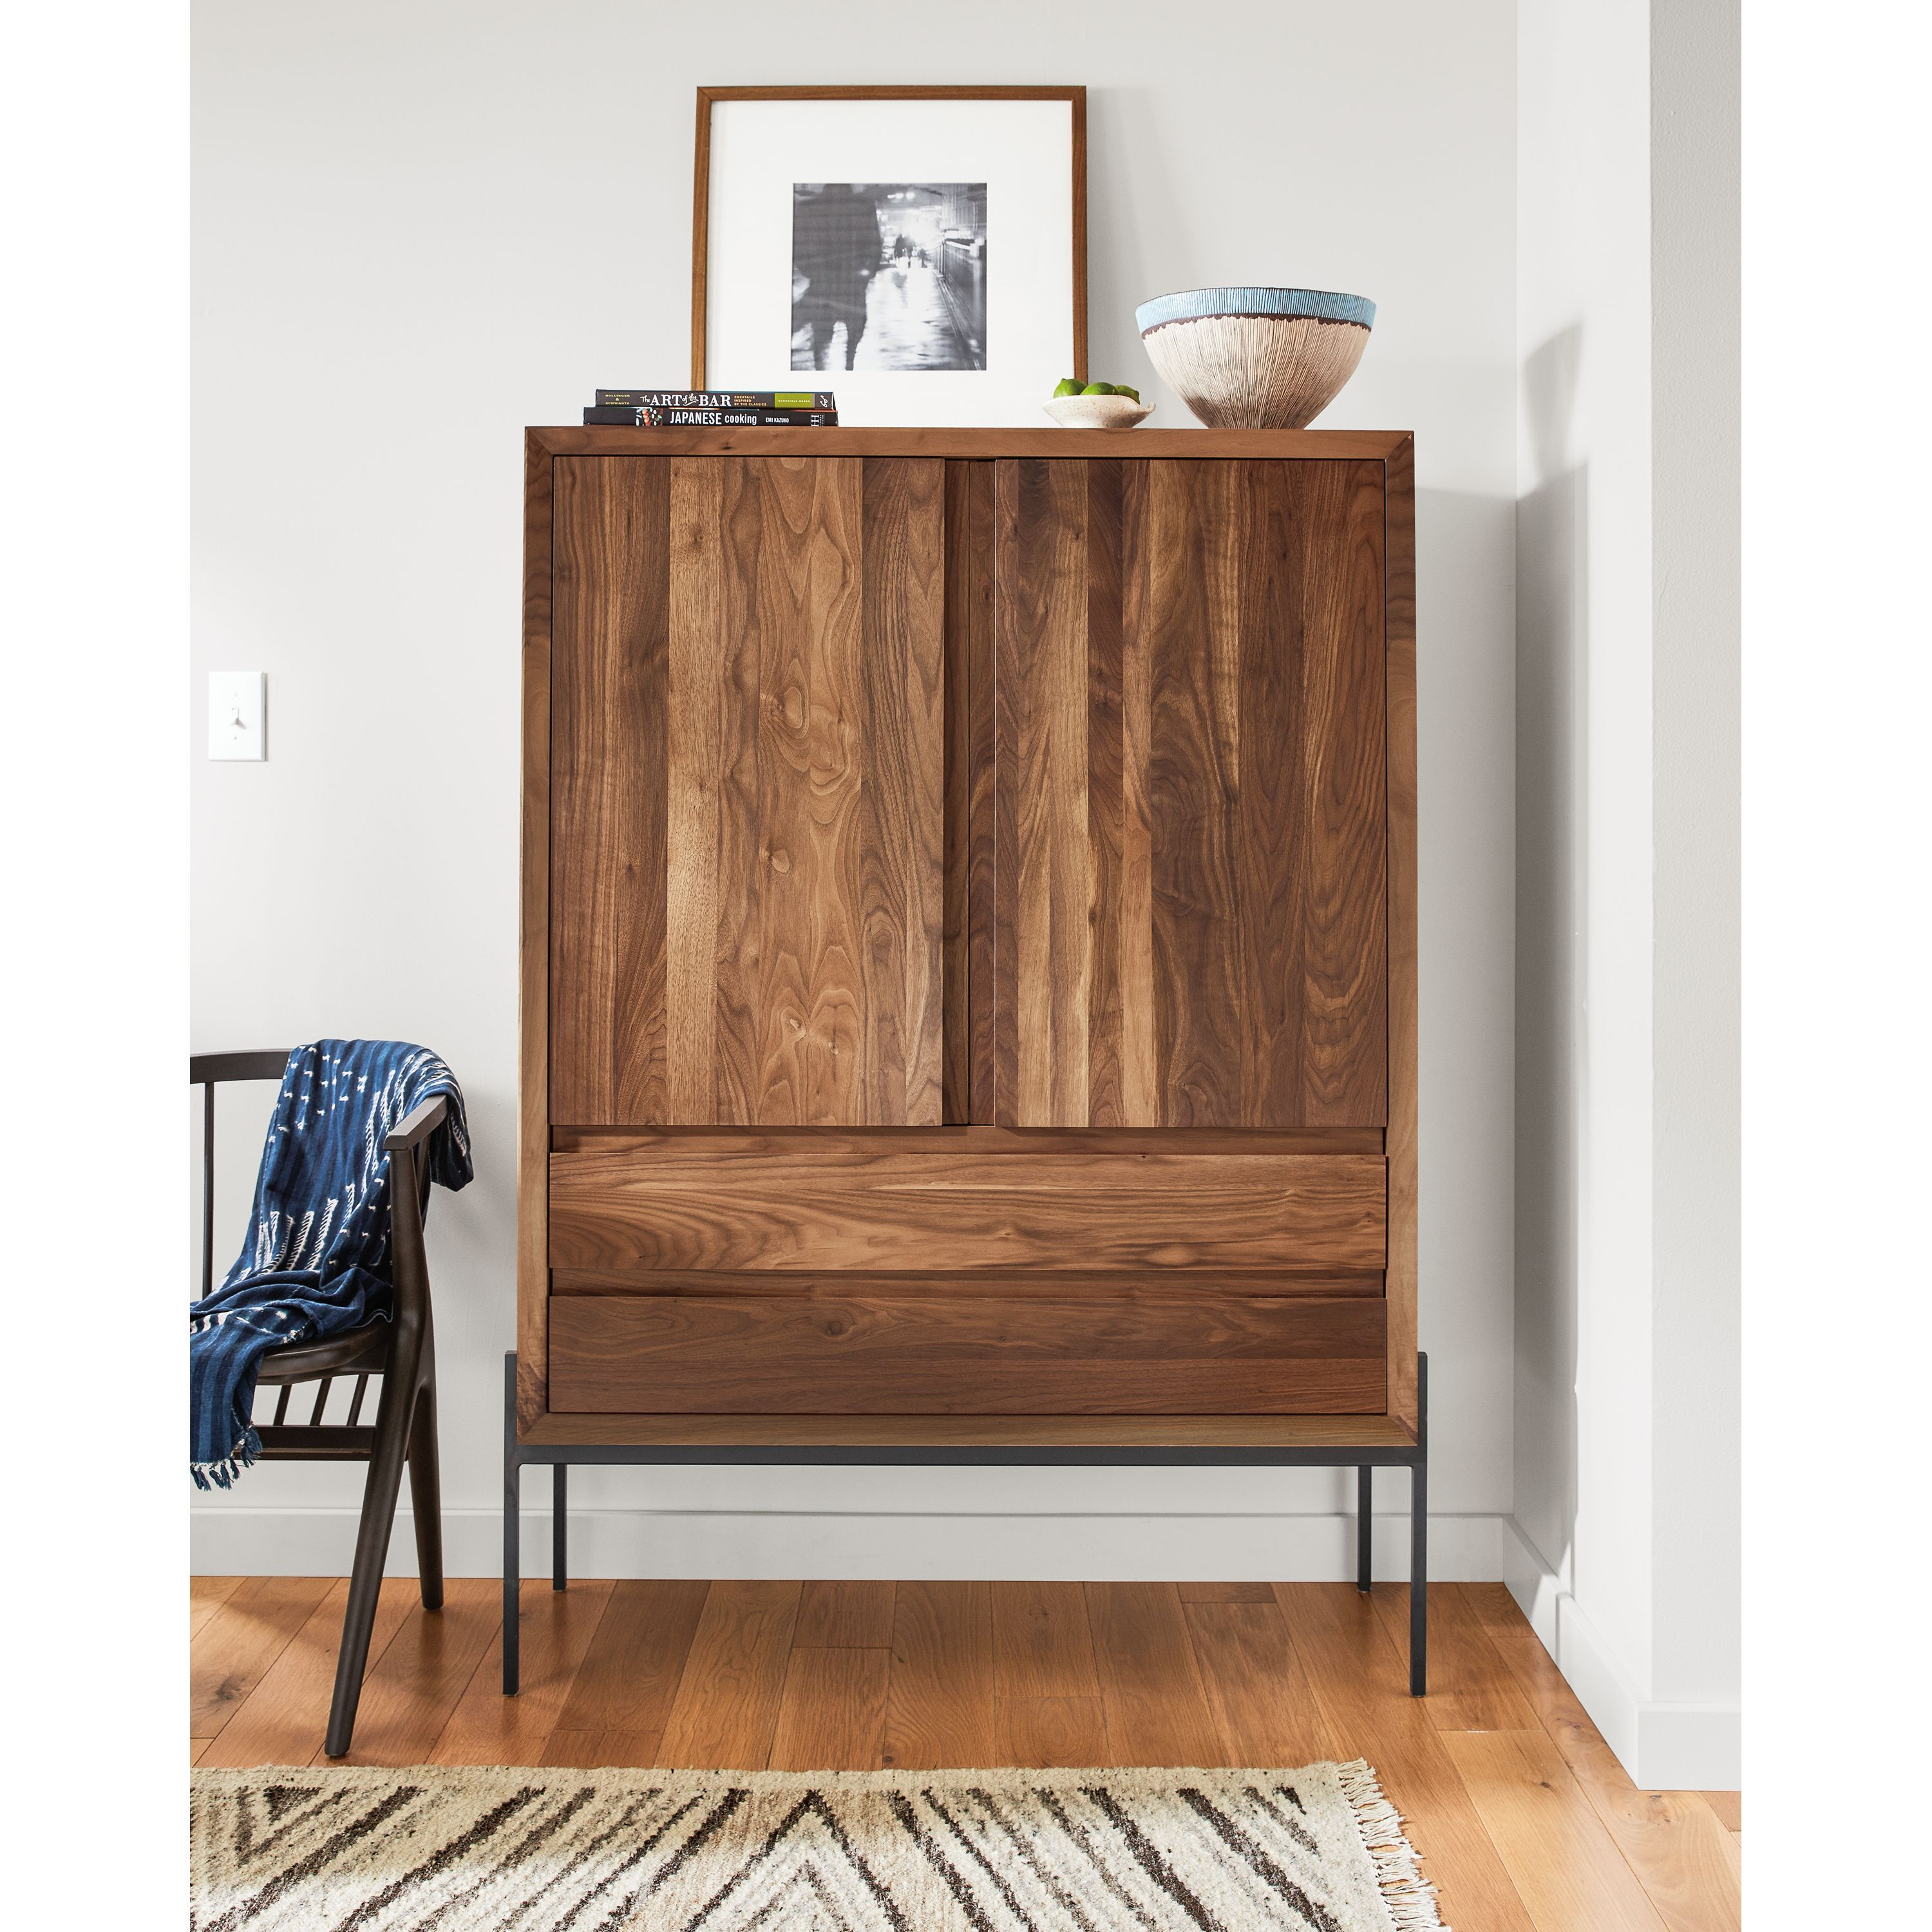 Kinley storage cabinet products pinterest cabinet room and